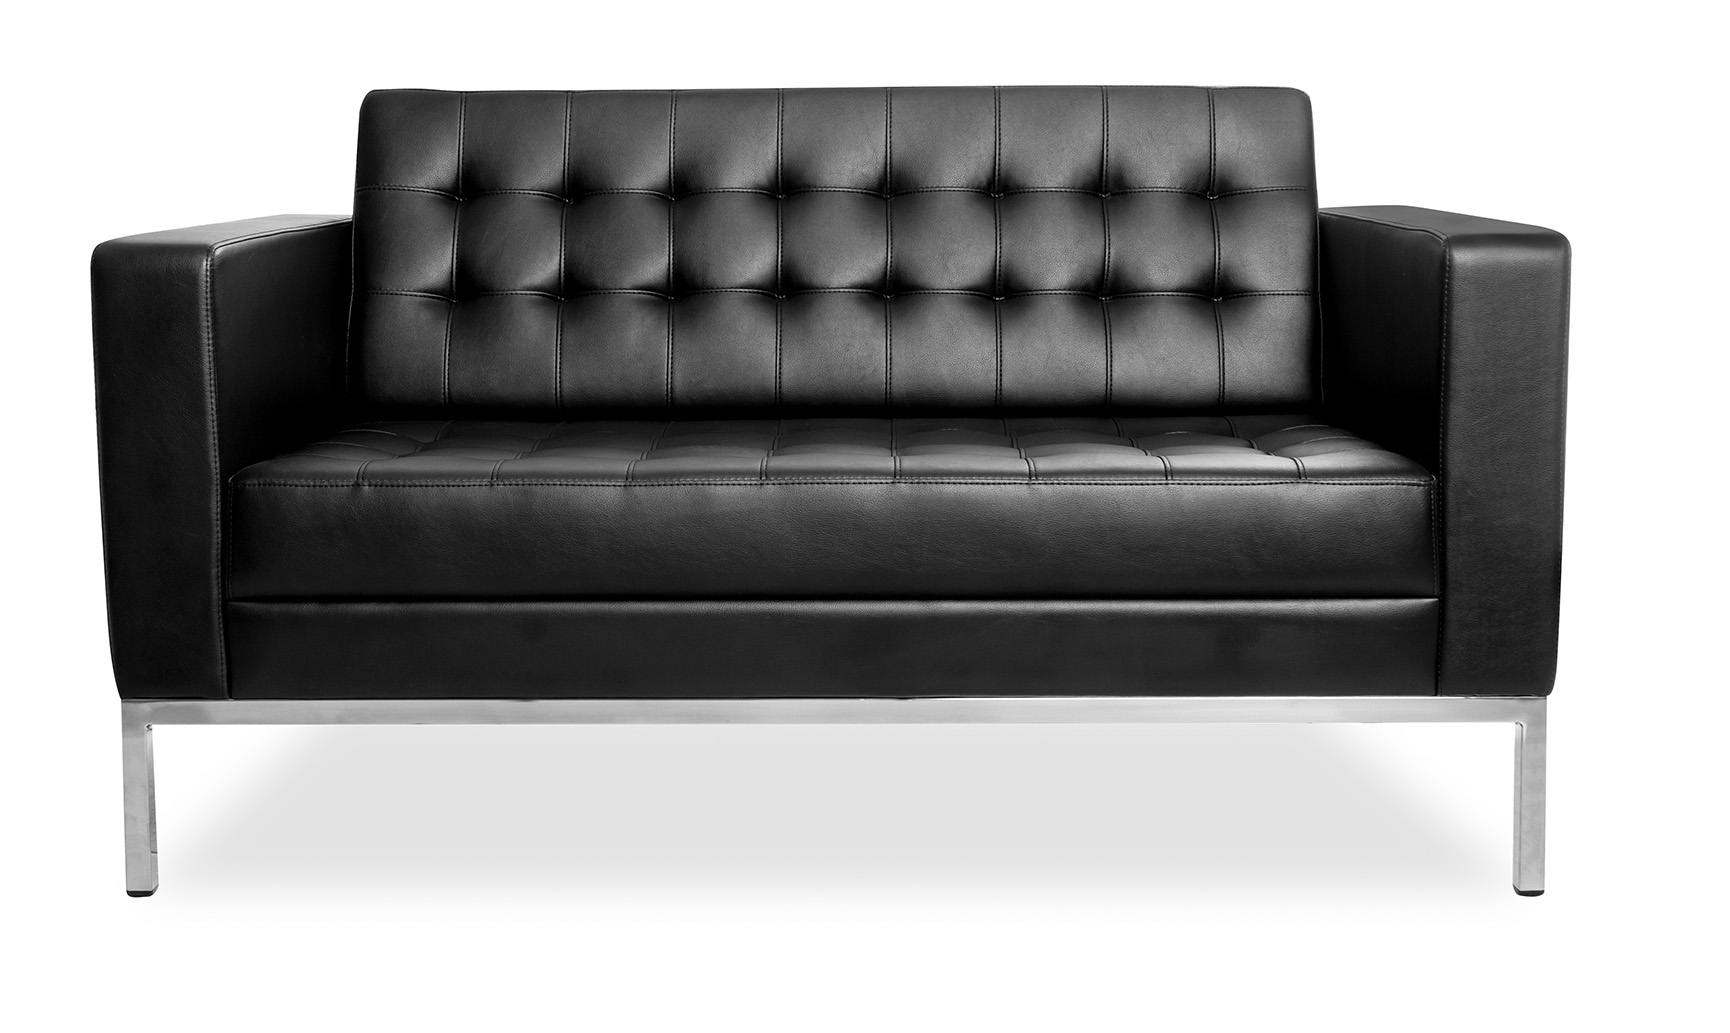 Office Couch Widely Used In Reception